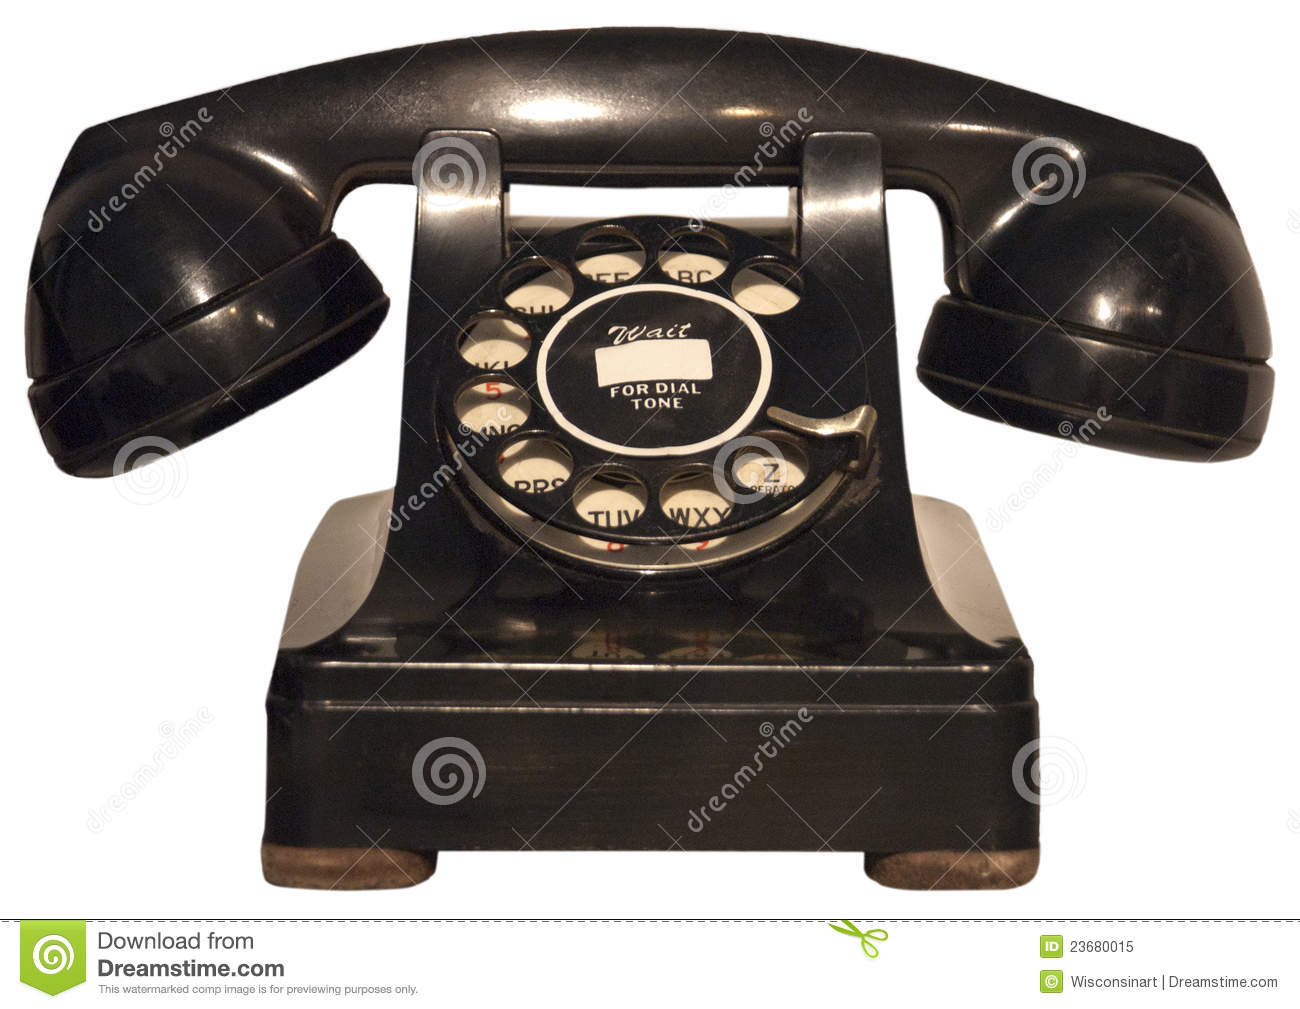 Imagen De Un Like: Old Retro Vintage Rotary Phone, Telephone Isolated Stock